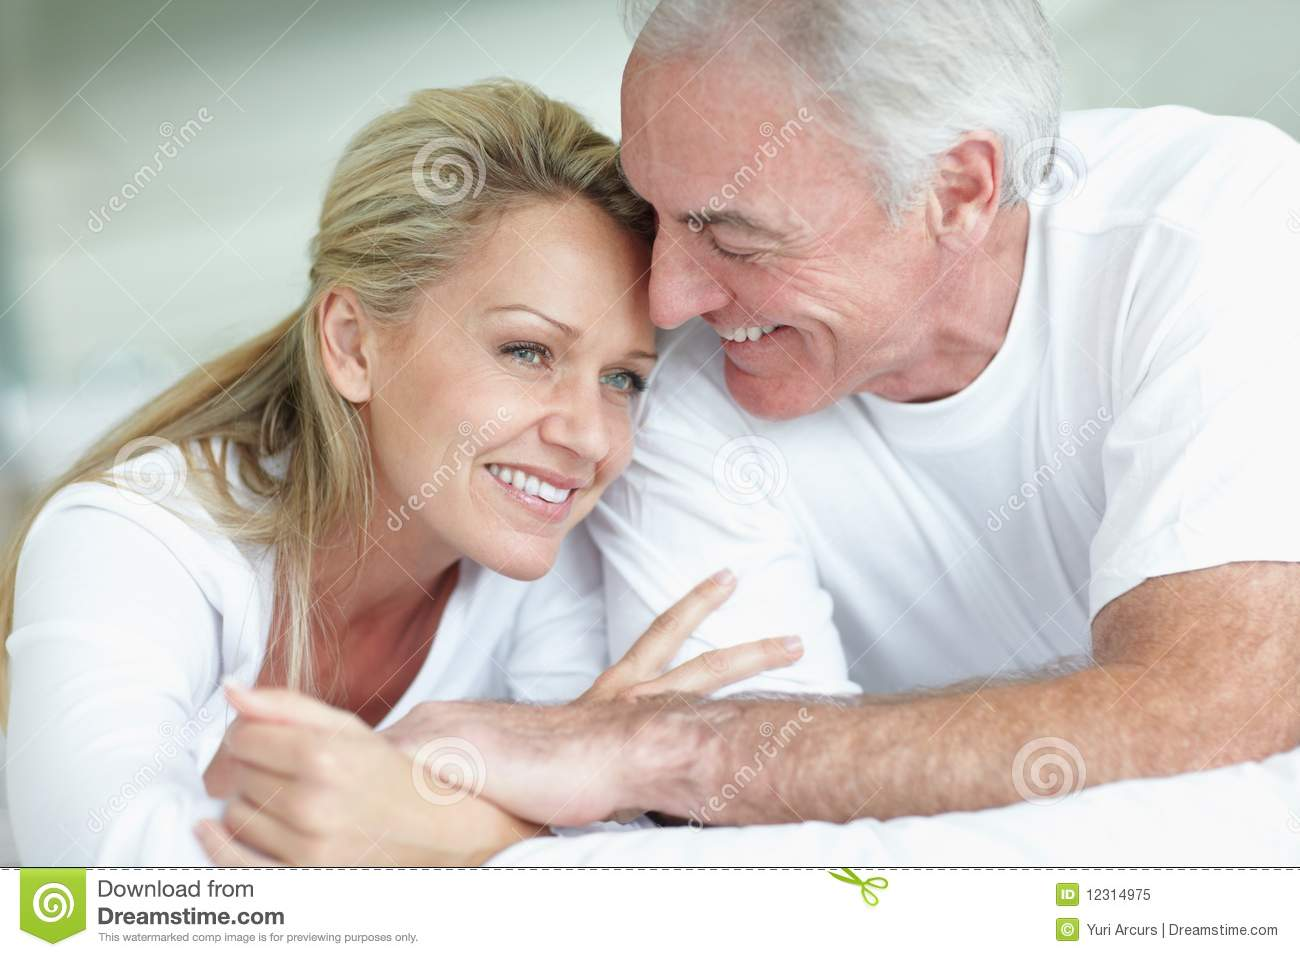 Romantic Couple In Bed Images 28 Images Stock Image Happy Romantic Couple Lying In Bed Image